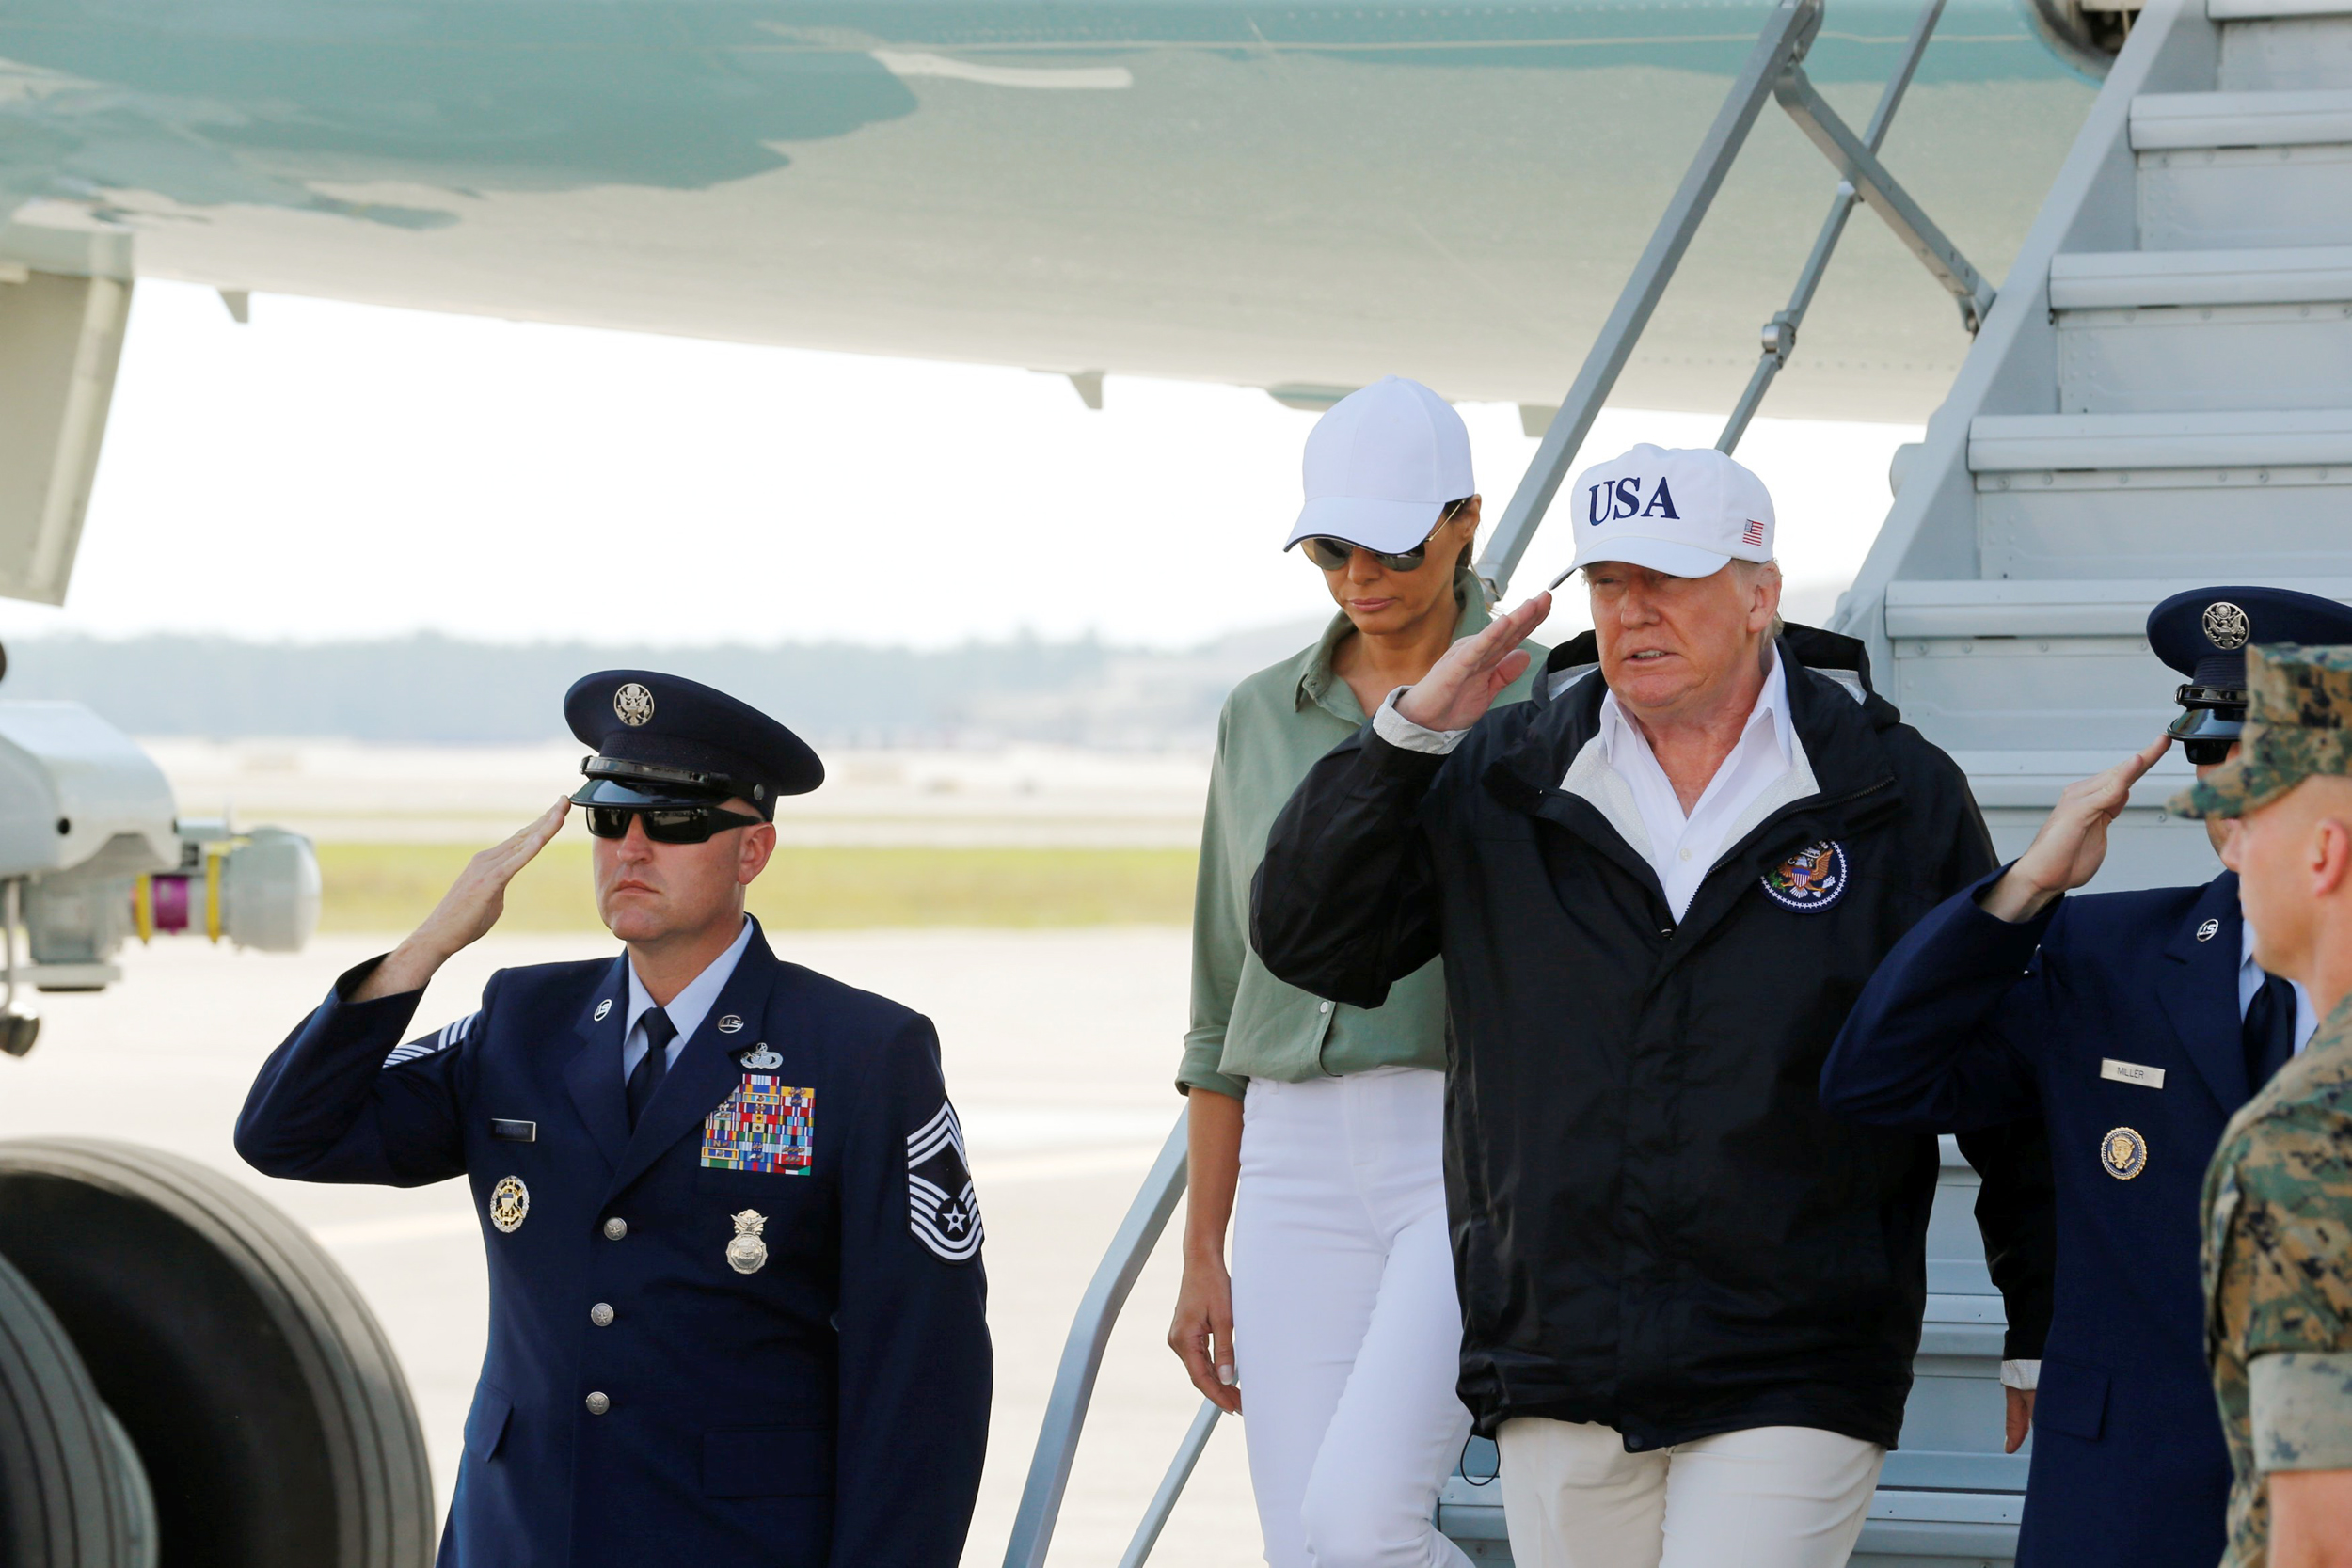 Image: U.S. President Trump steps off Air Force One prior to receiving a a briefing on Hurricane Irma relief efforts in Fort Myers, Florida